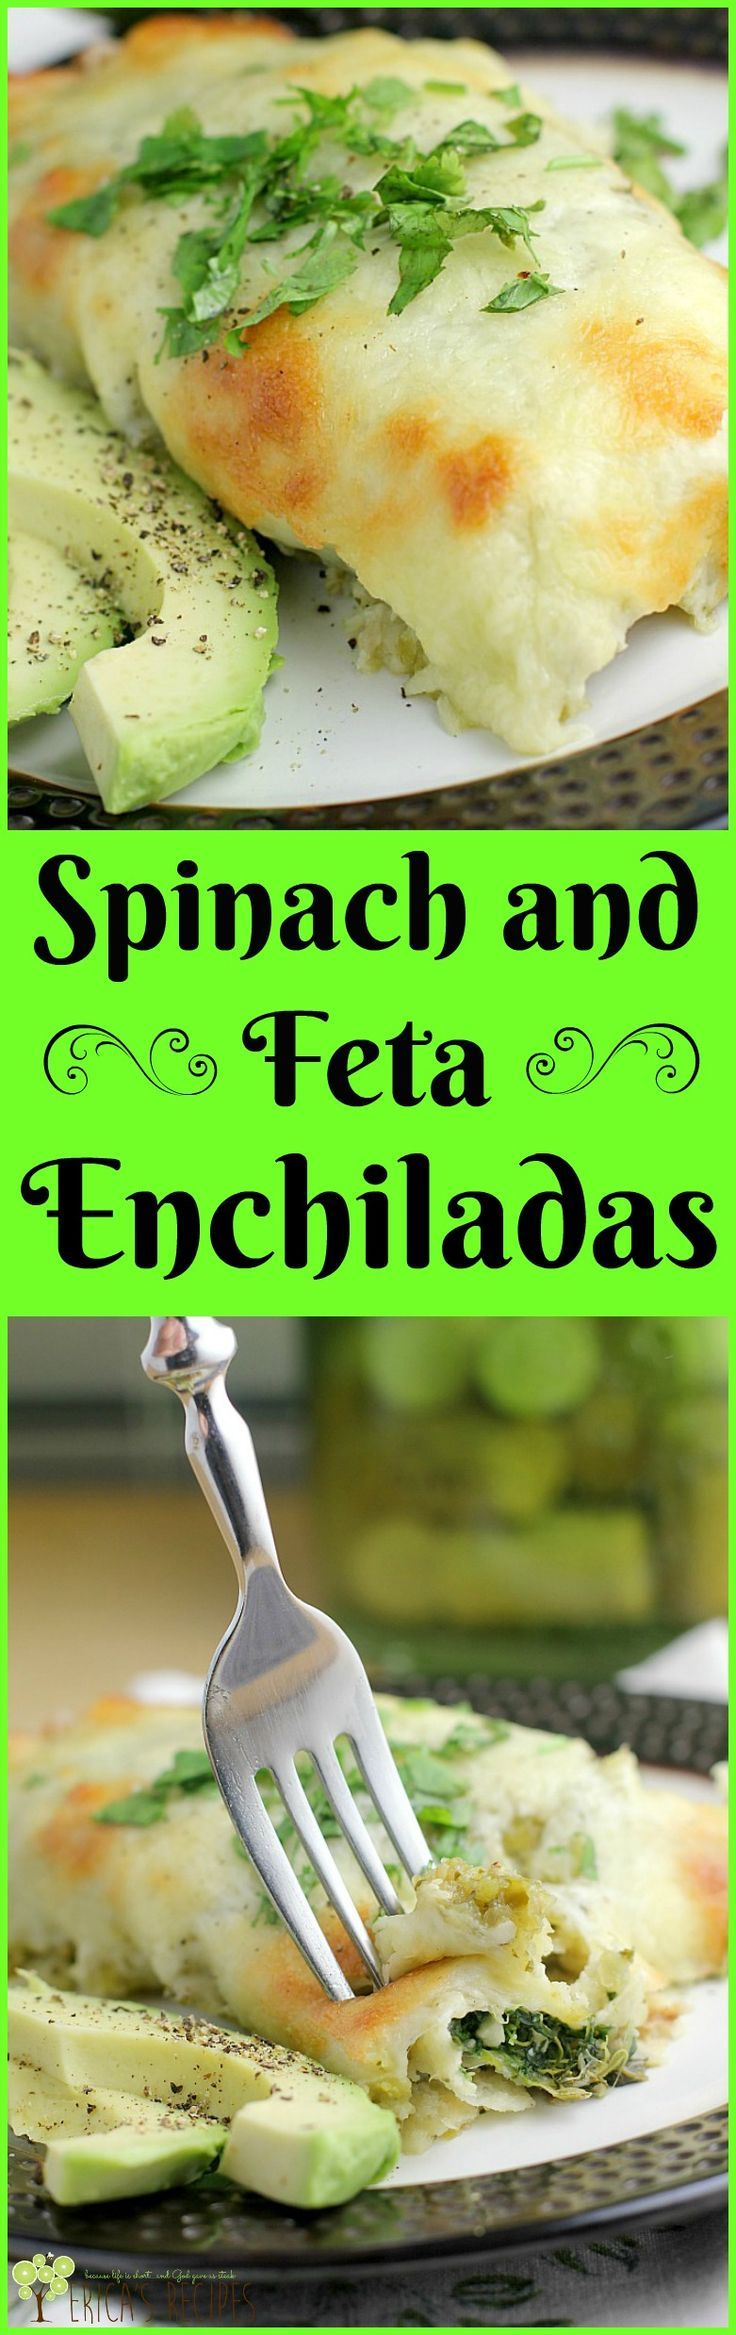 Spinach and Feta Enchiladas http://wp.me/p4qC4h-3yj